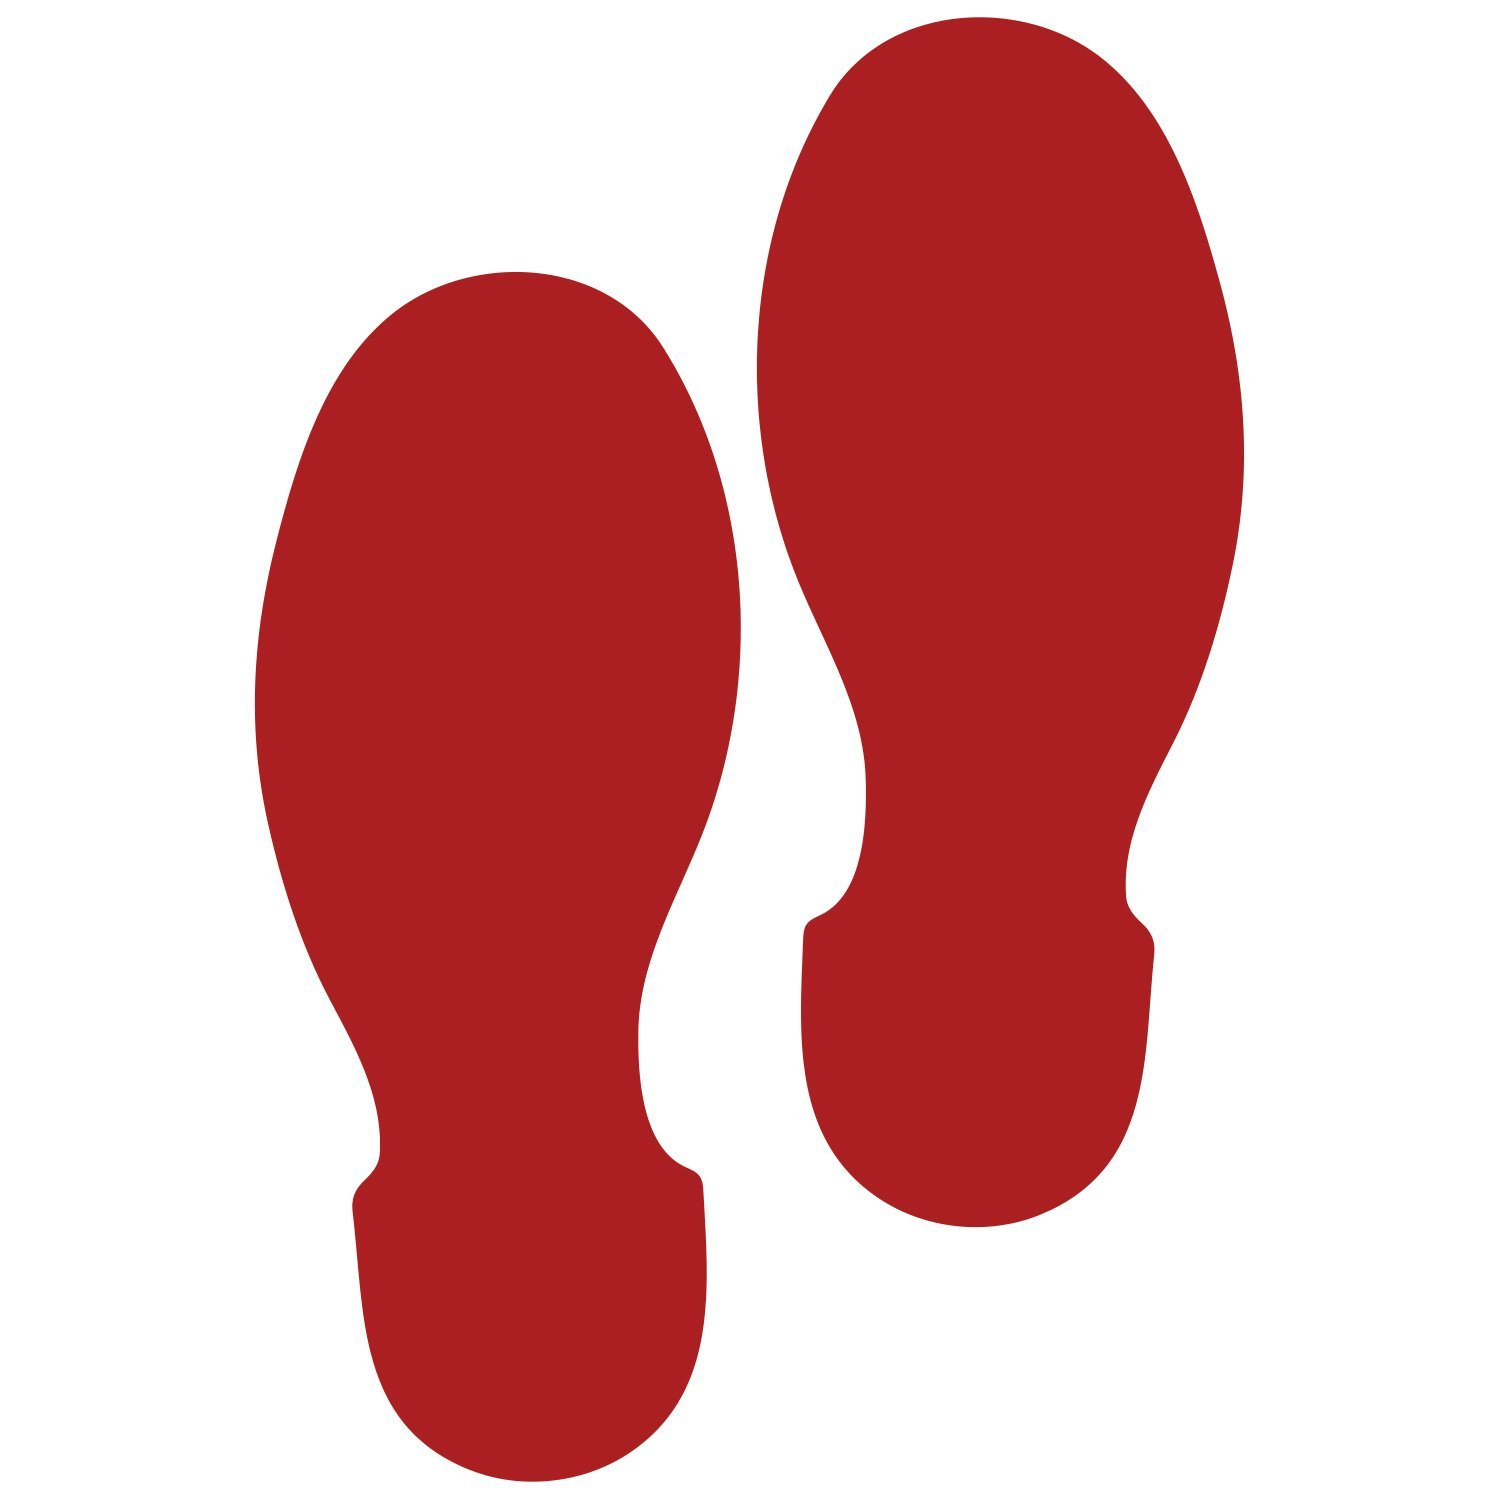 LiteMark 9 Inch Red Removable Shoe Print Decal Stickers for Floors and Walls - Pack of 12 (6 Pairs)